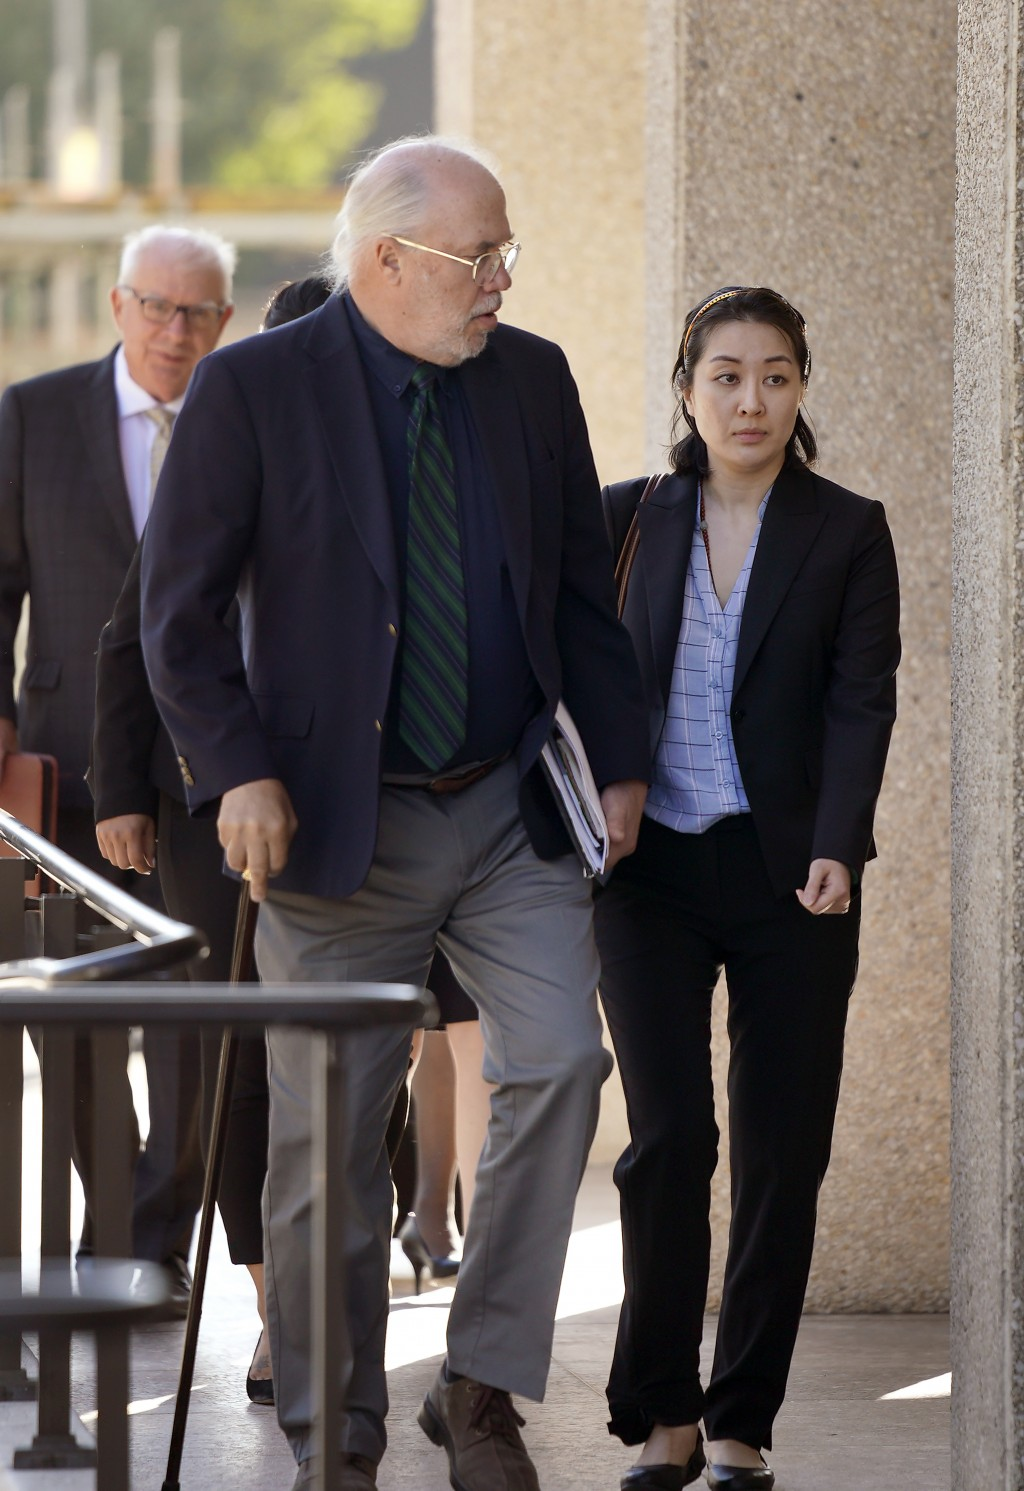 Tiffany Li, right, and her attorney Geoff Carr, left, arrive at the courthouse Thursday, Sept. 12, 2019, in Redwood City, Calif. The trial of Li, a Ch...